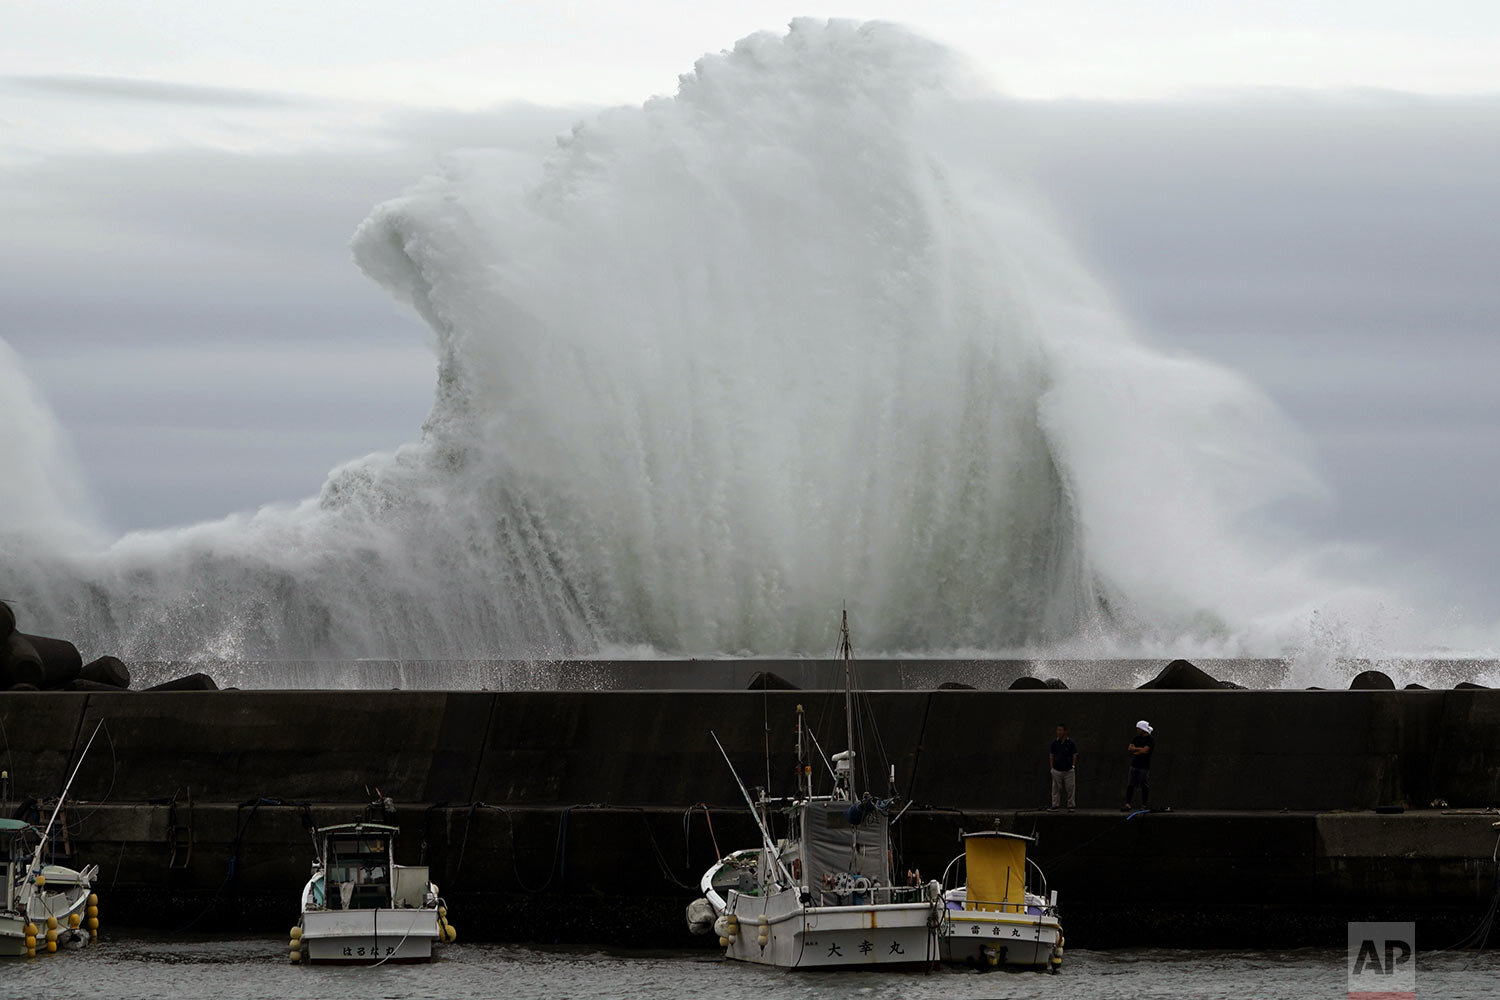 Men look at fishing boats as surging waves hit against the breakwater while Typhoon Hagibis approaches at a port in town of Kiho, Mie Prefecture, Japan Friday, Oct. 11, 2019.  (AP Photo/Toru Hanai)